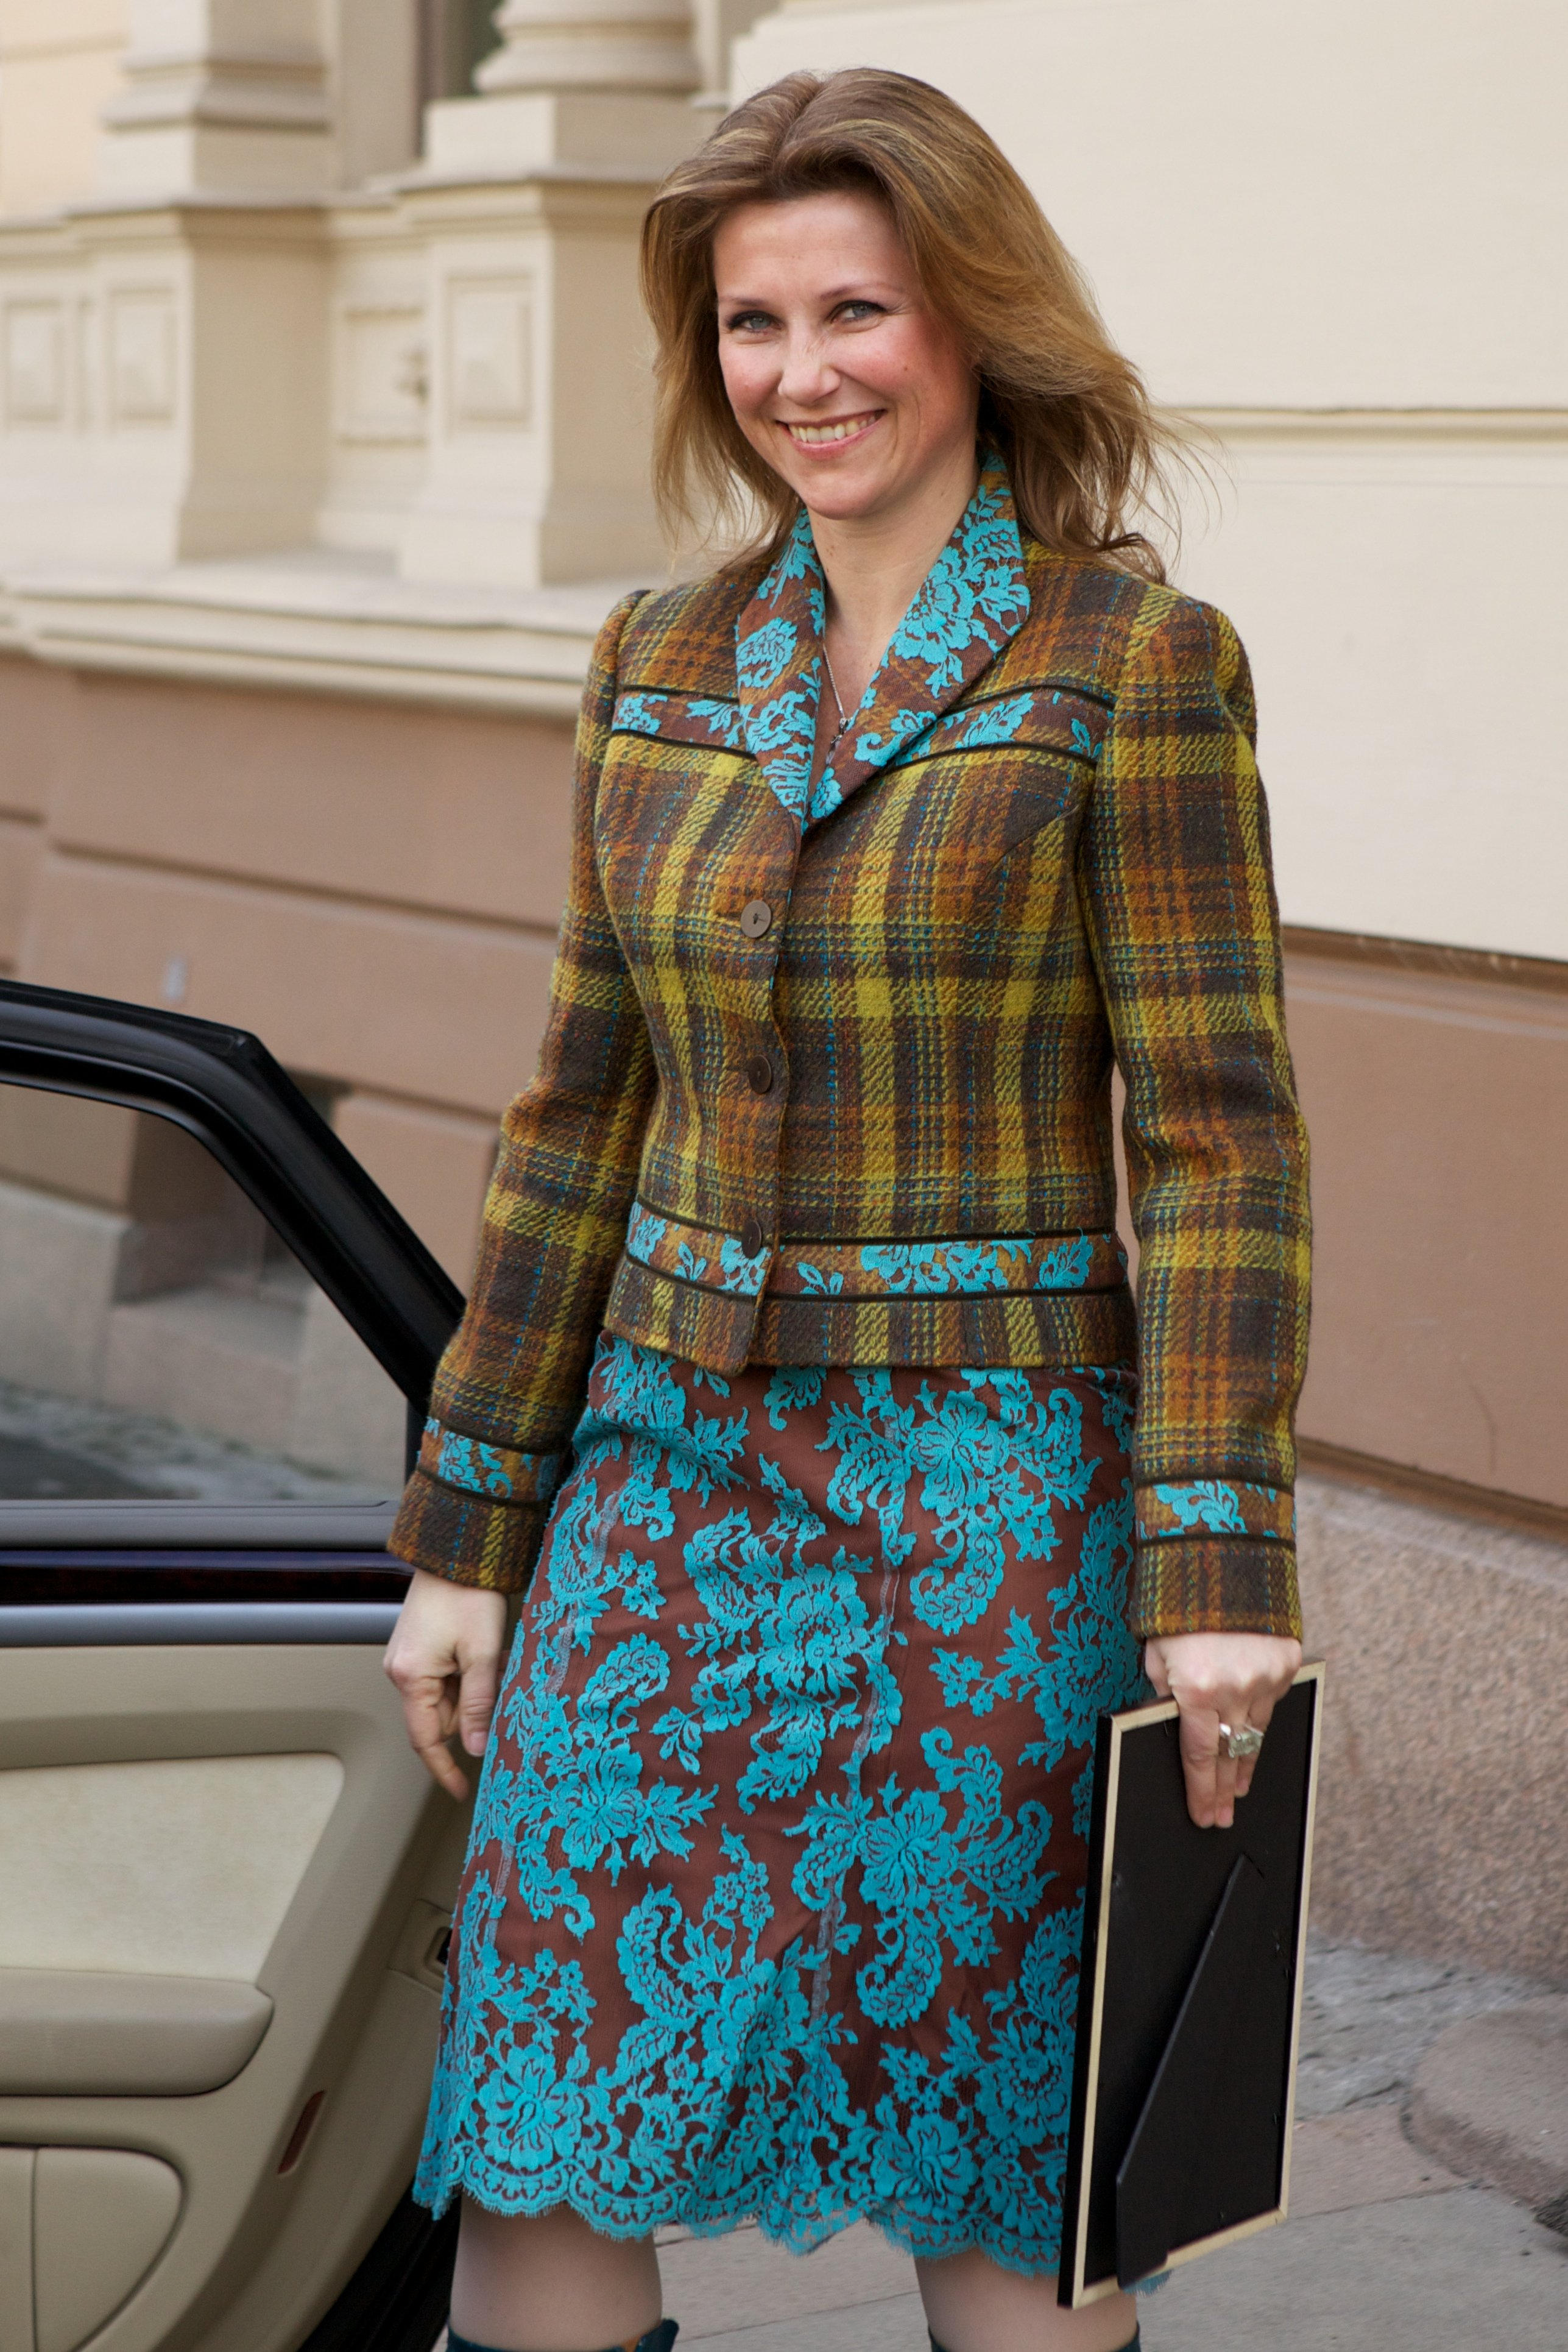 Princess Märtha Louise of Norway attends a reception for Norwegian athletes on April 5, 2013 in Oslo, Norway.   Source: Getty Images